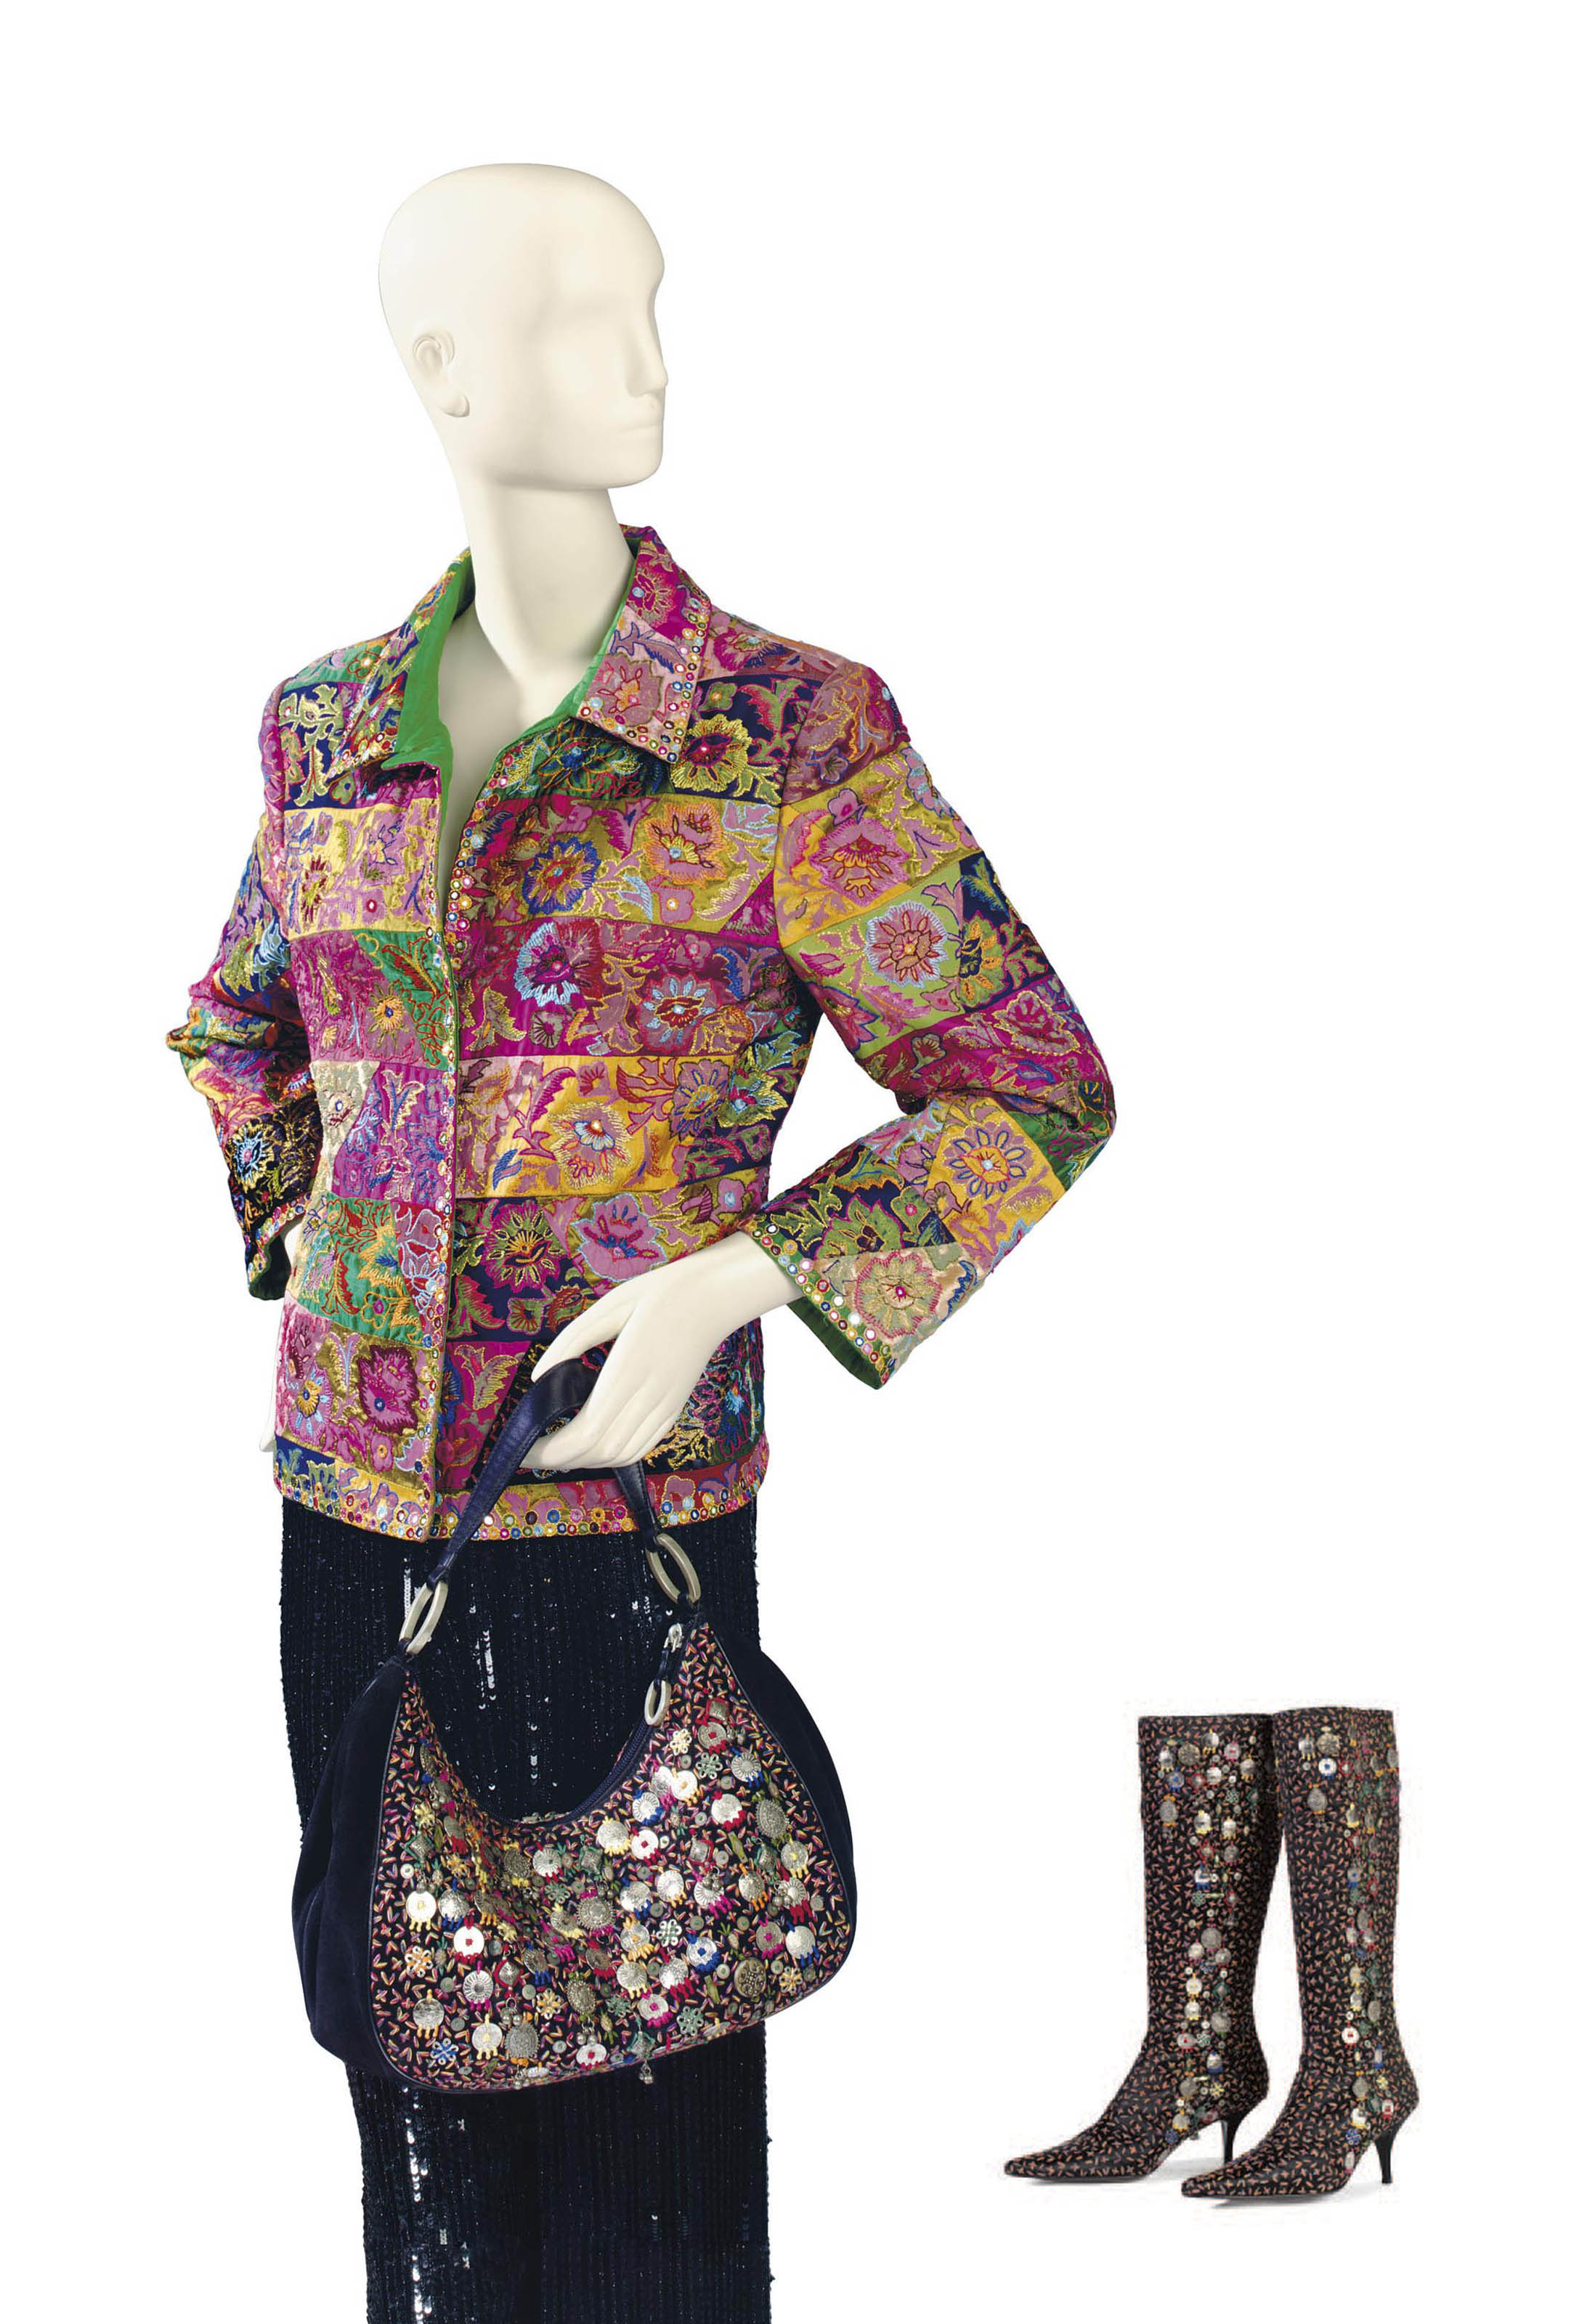 AN OSCAR DE LA RENTA MULTI-COLORED VELVET AND SILK EMBROIDERED JACKET WITH EMBROIDERED BOOTS AND SUEDE HANDBAG